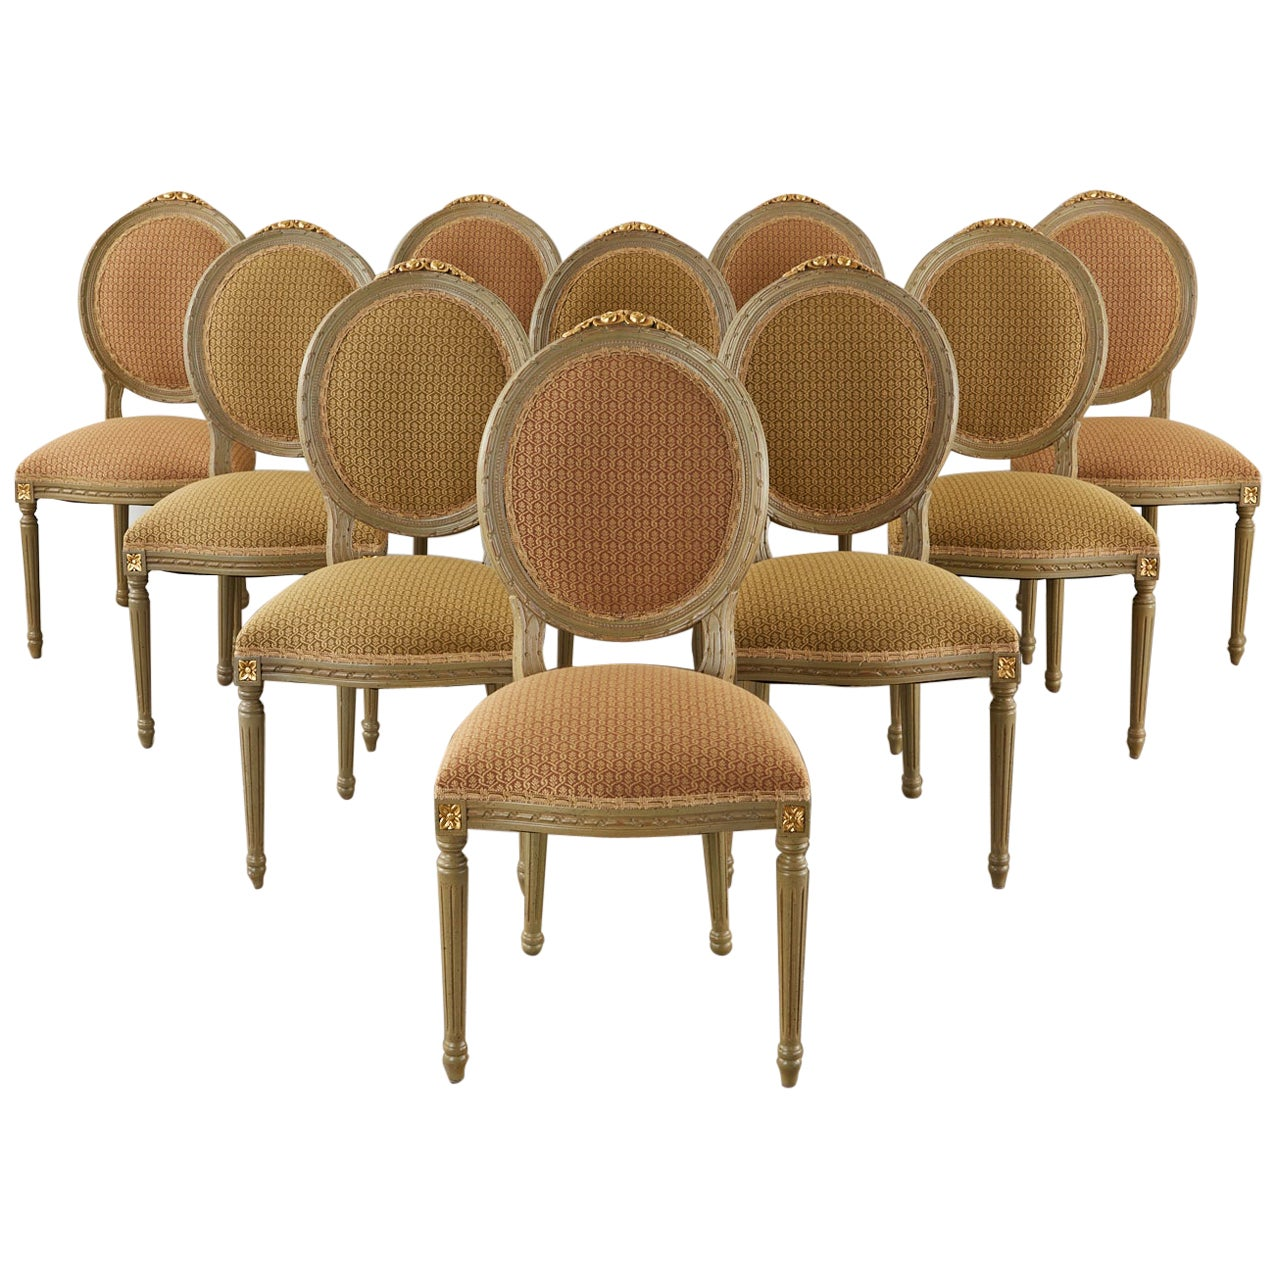 Set of Ten French Louis XVI Style Lacquered Dining Chairs